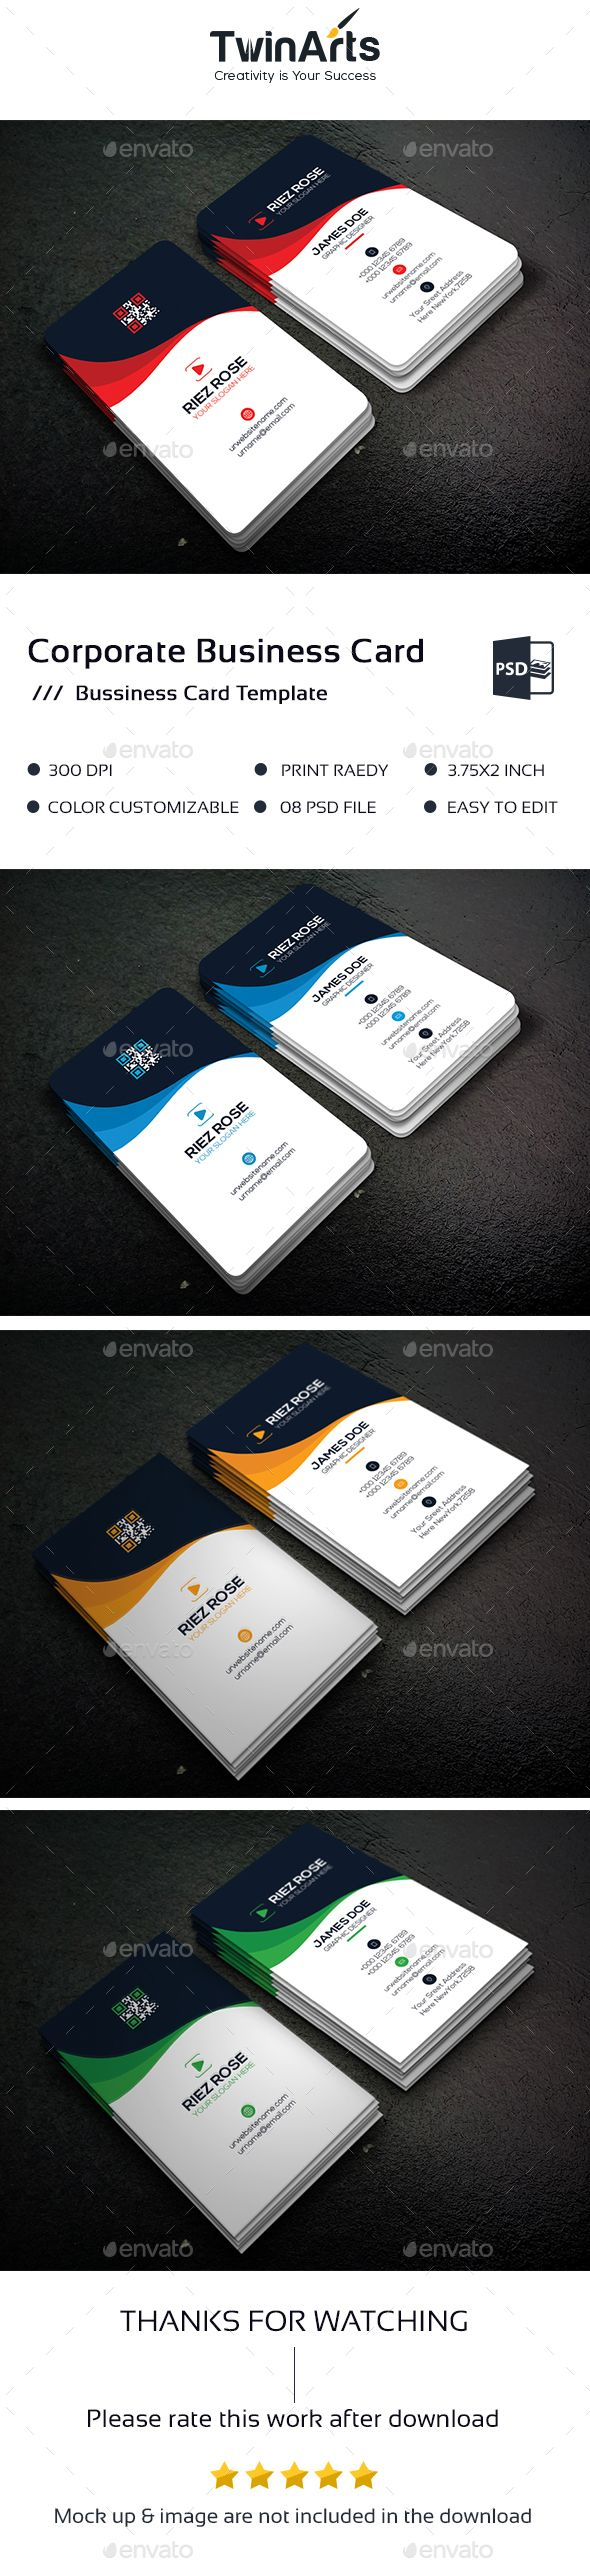 116 best business card images on pinterest cards business cards business card business card templates magicingreecefo Gallery